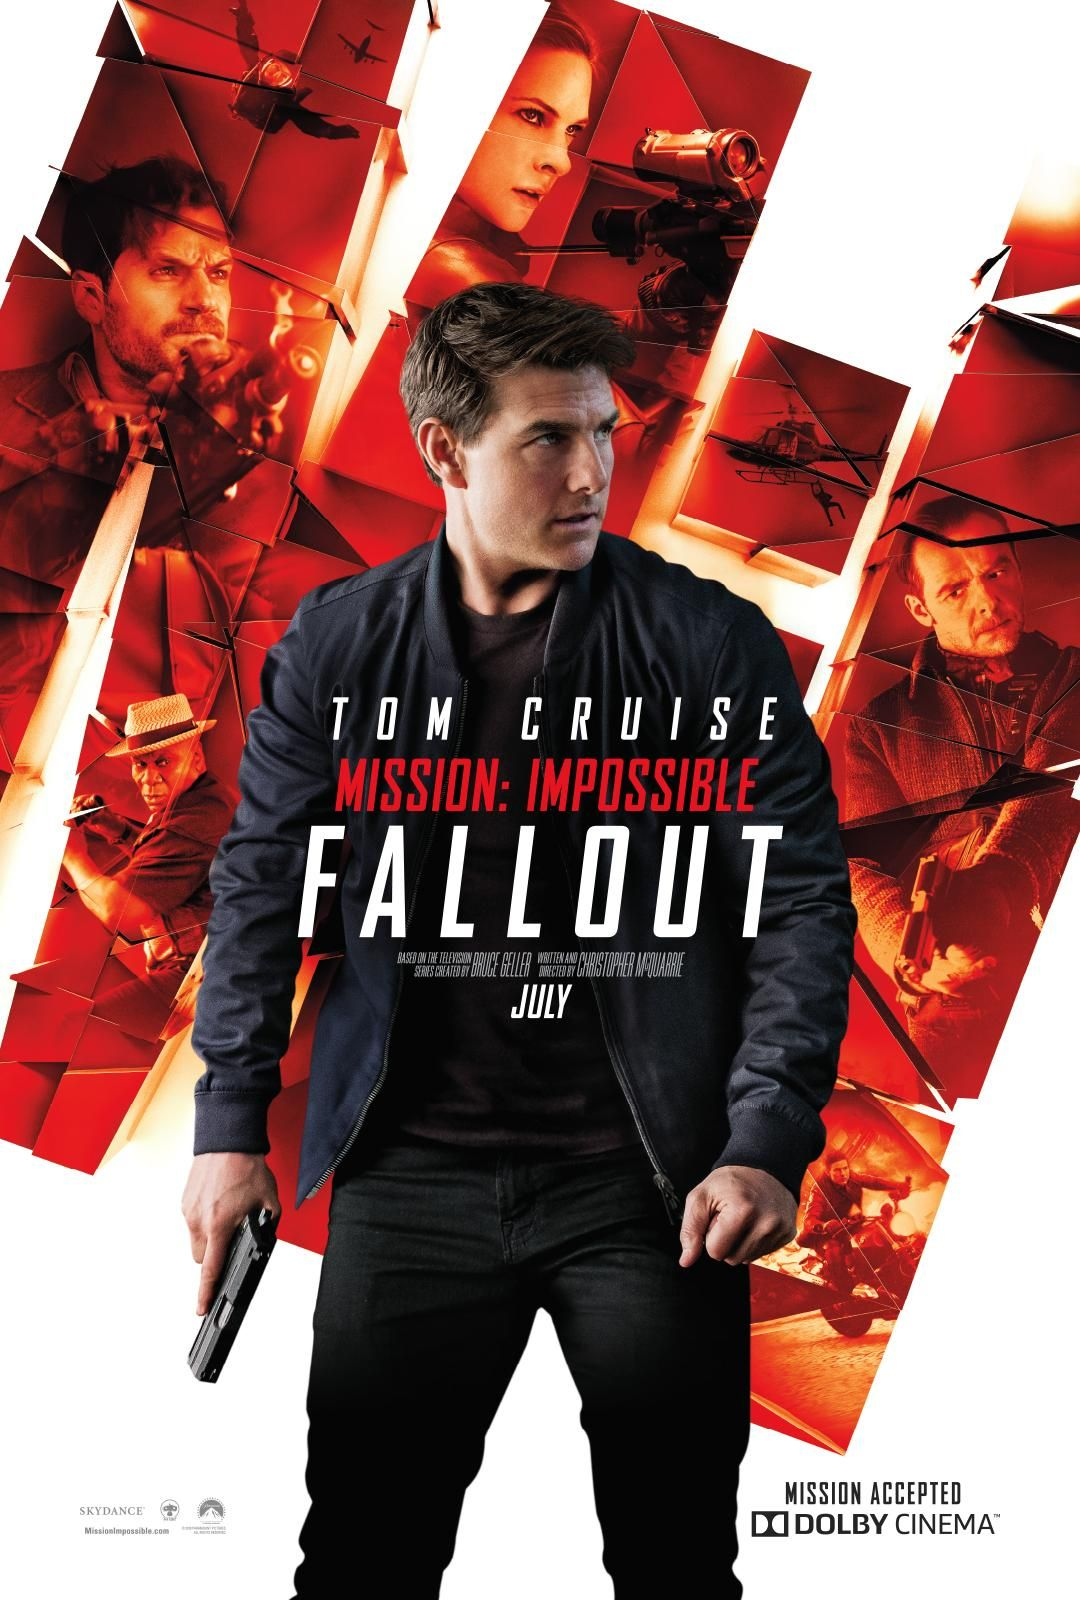 Mission Impossible 6 Fallout New Poster And Tv Spot Https Teaser Trailer Com Movie Missi Fallout Movie Mission Impossible Movie Mission Impossible Fallout